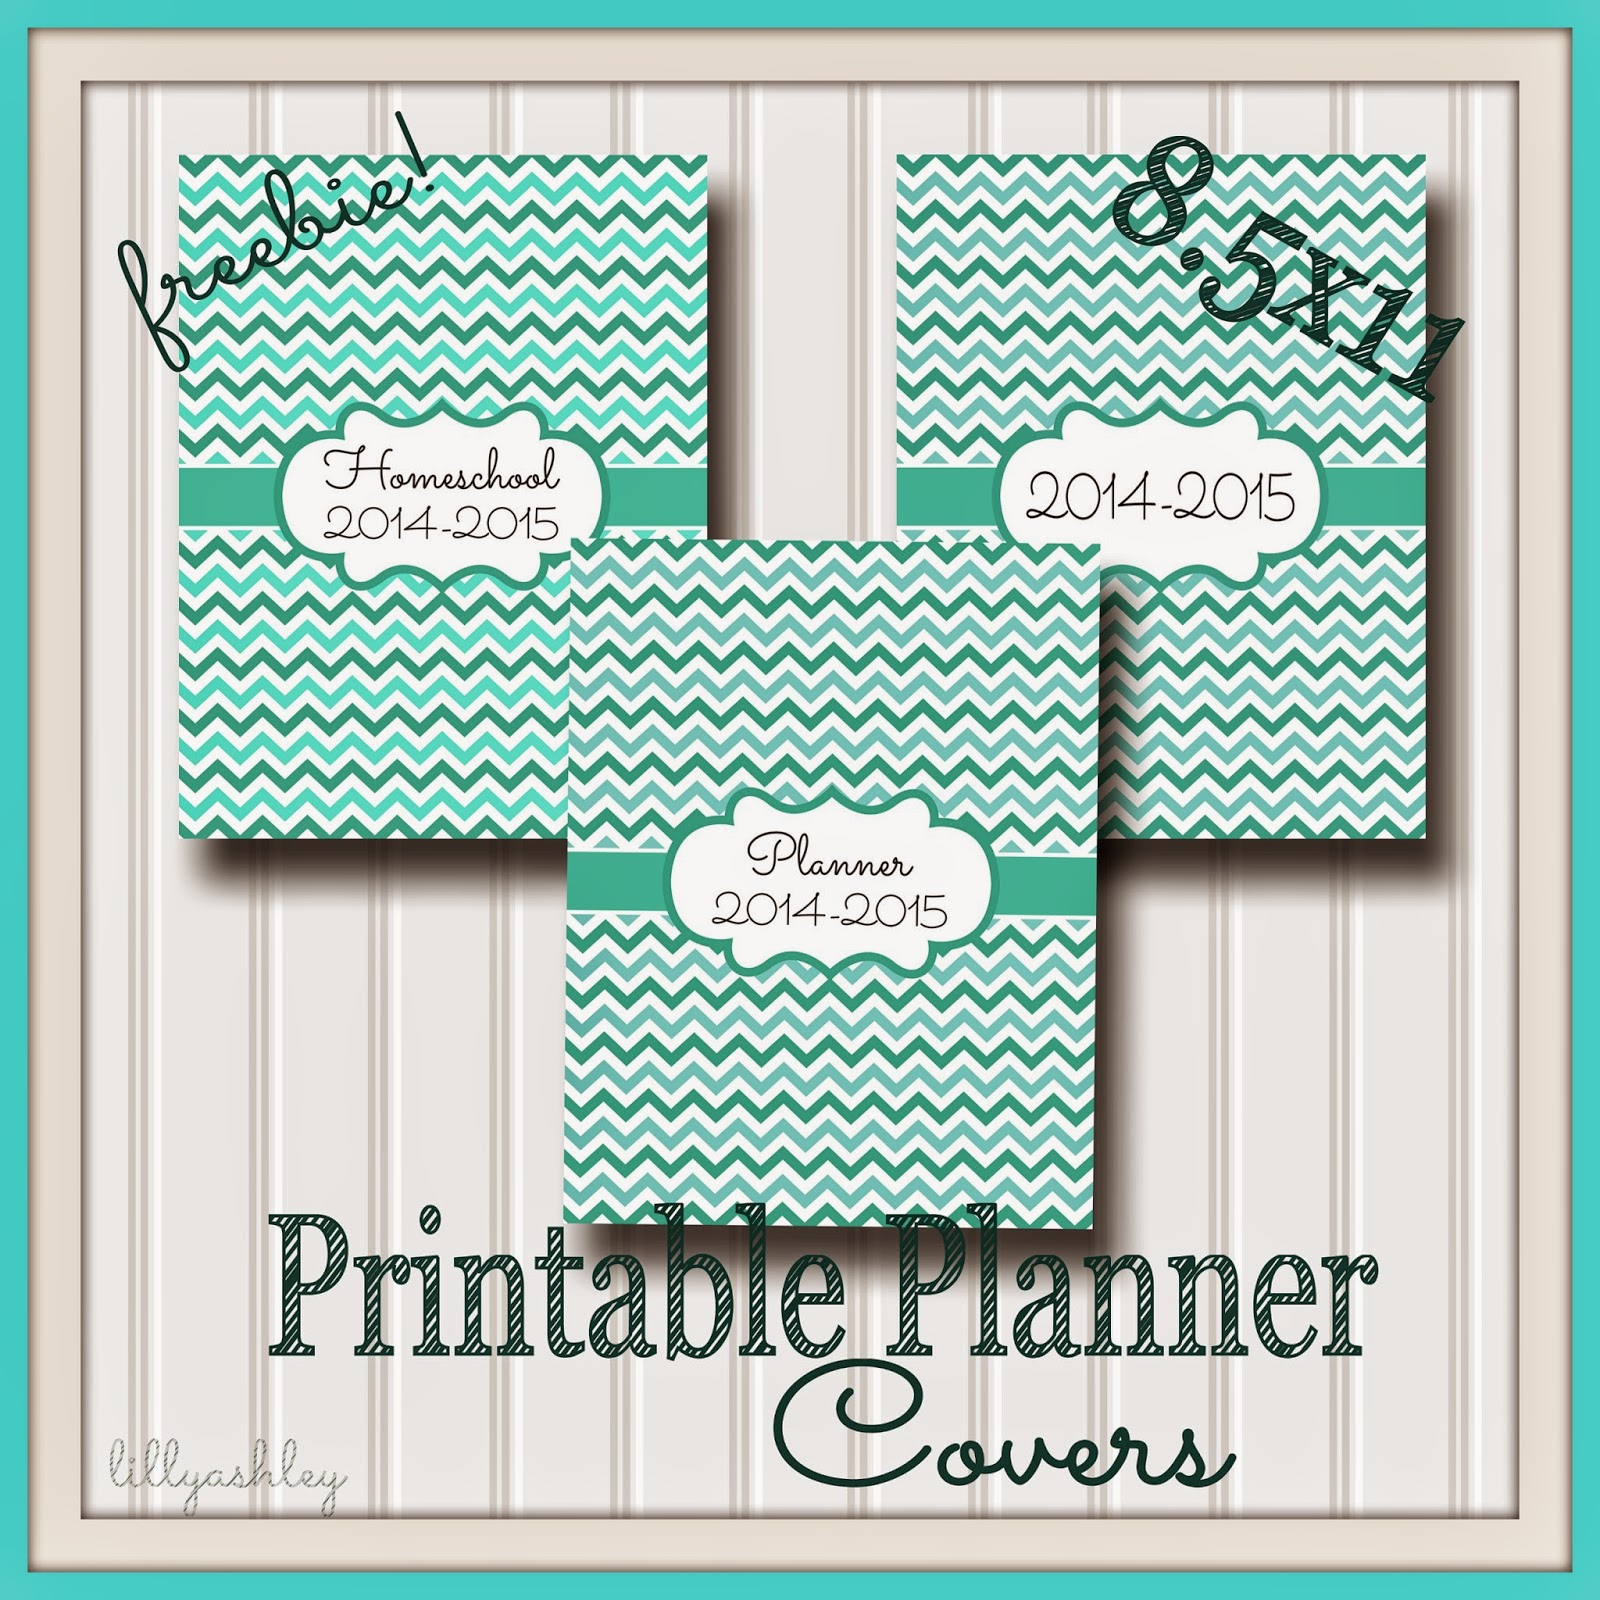 Homeschool Folder Chevron